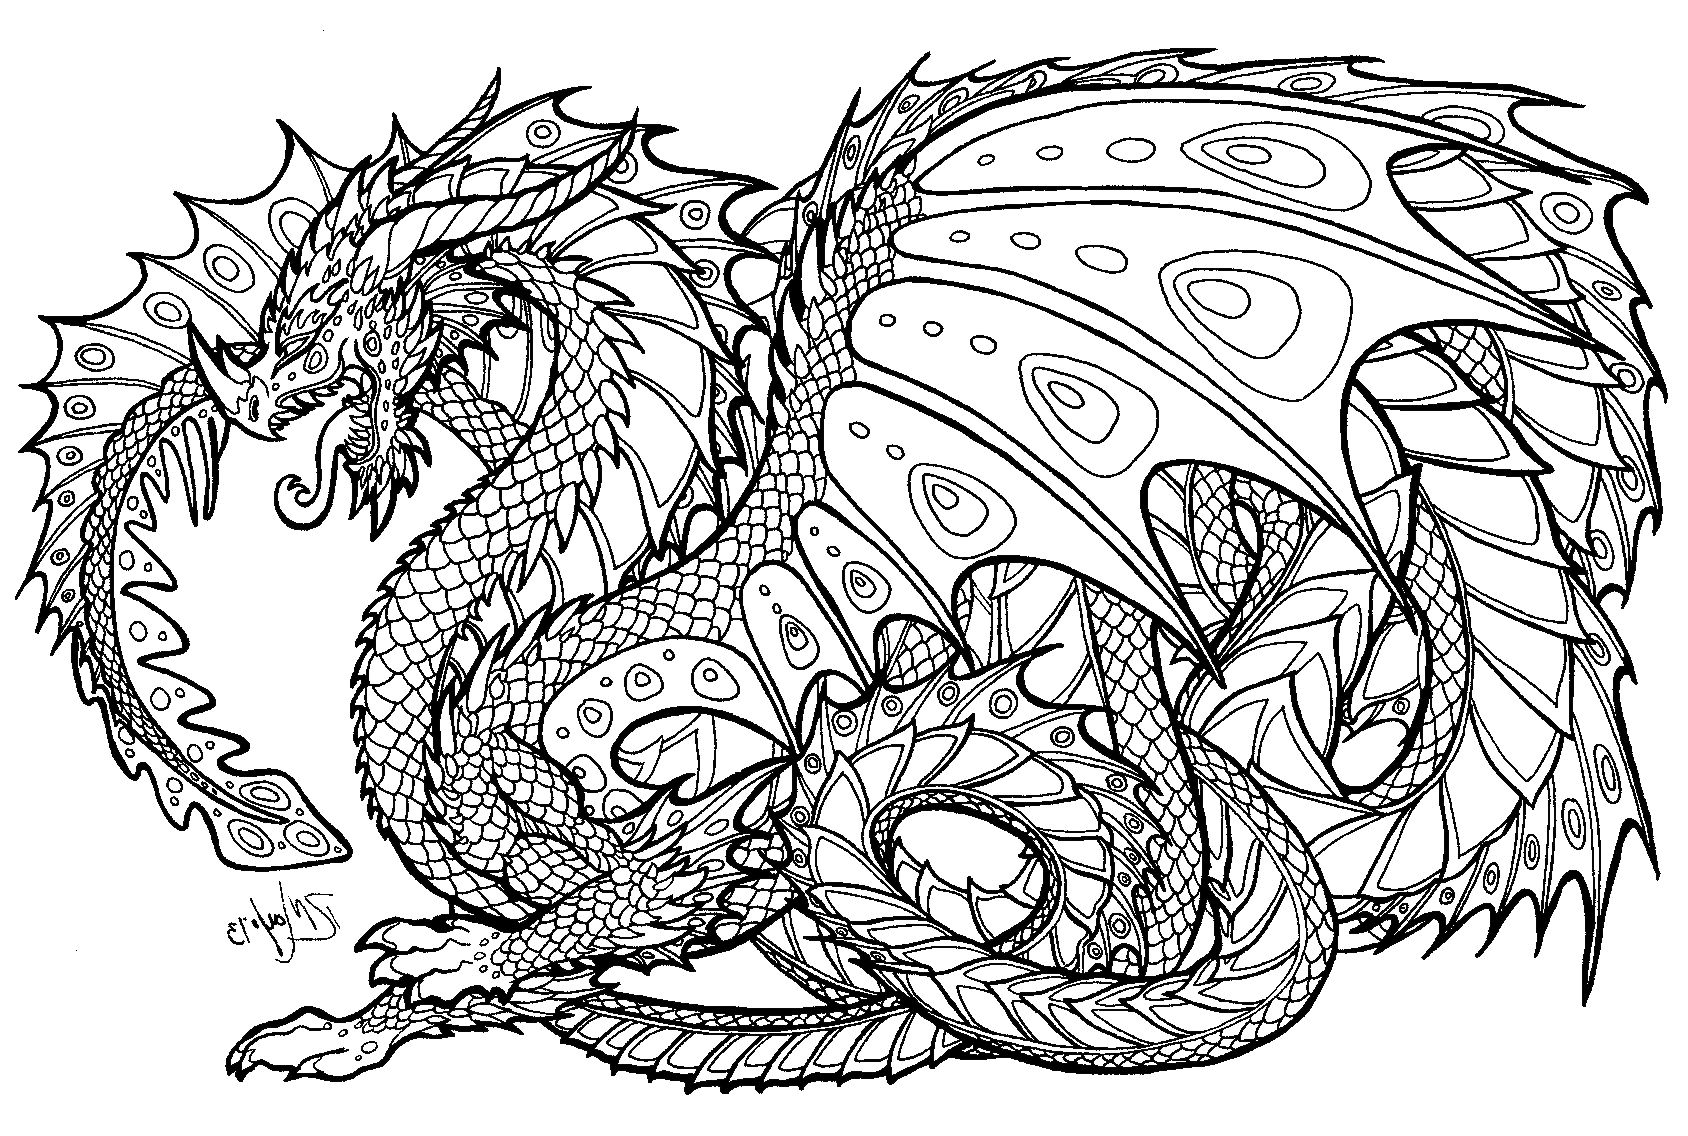 Free Printable Coloring Pages For Adults Advanced | Sleekads - Free Printable Coloring Pages For Adults Advanced